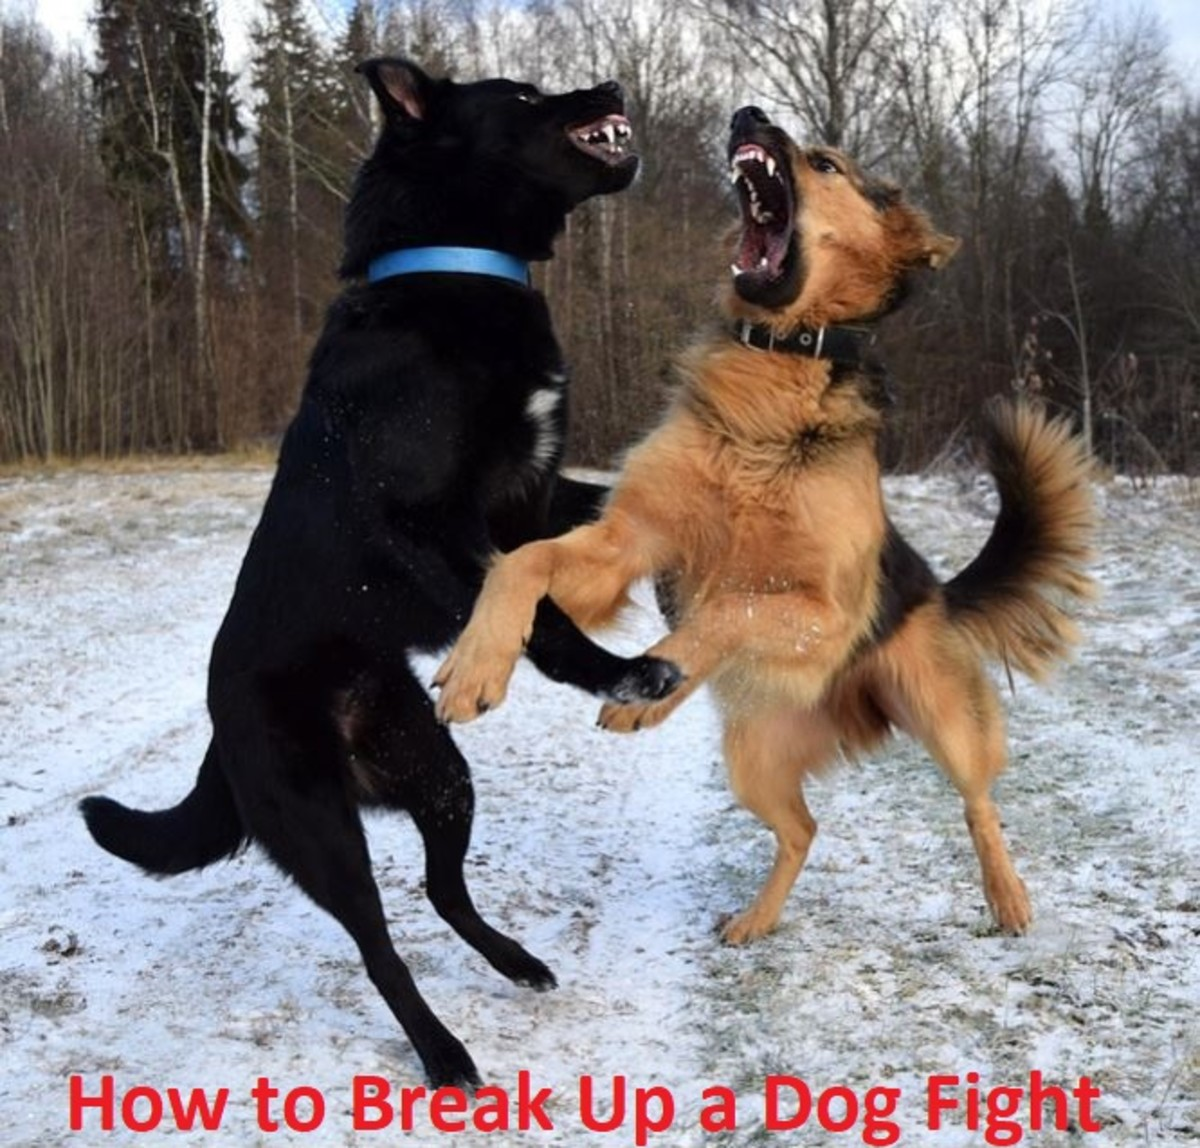 how-to-break-up-a-dog-fight-safely